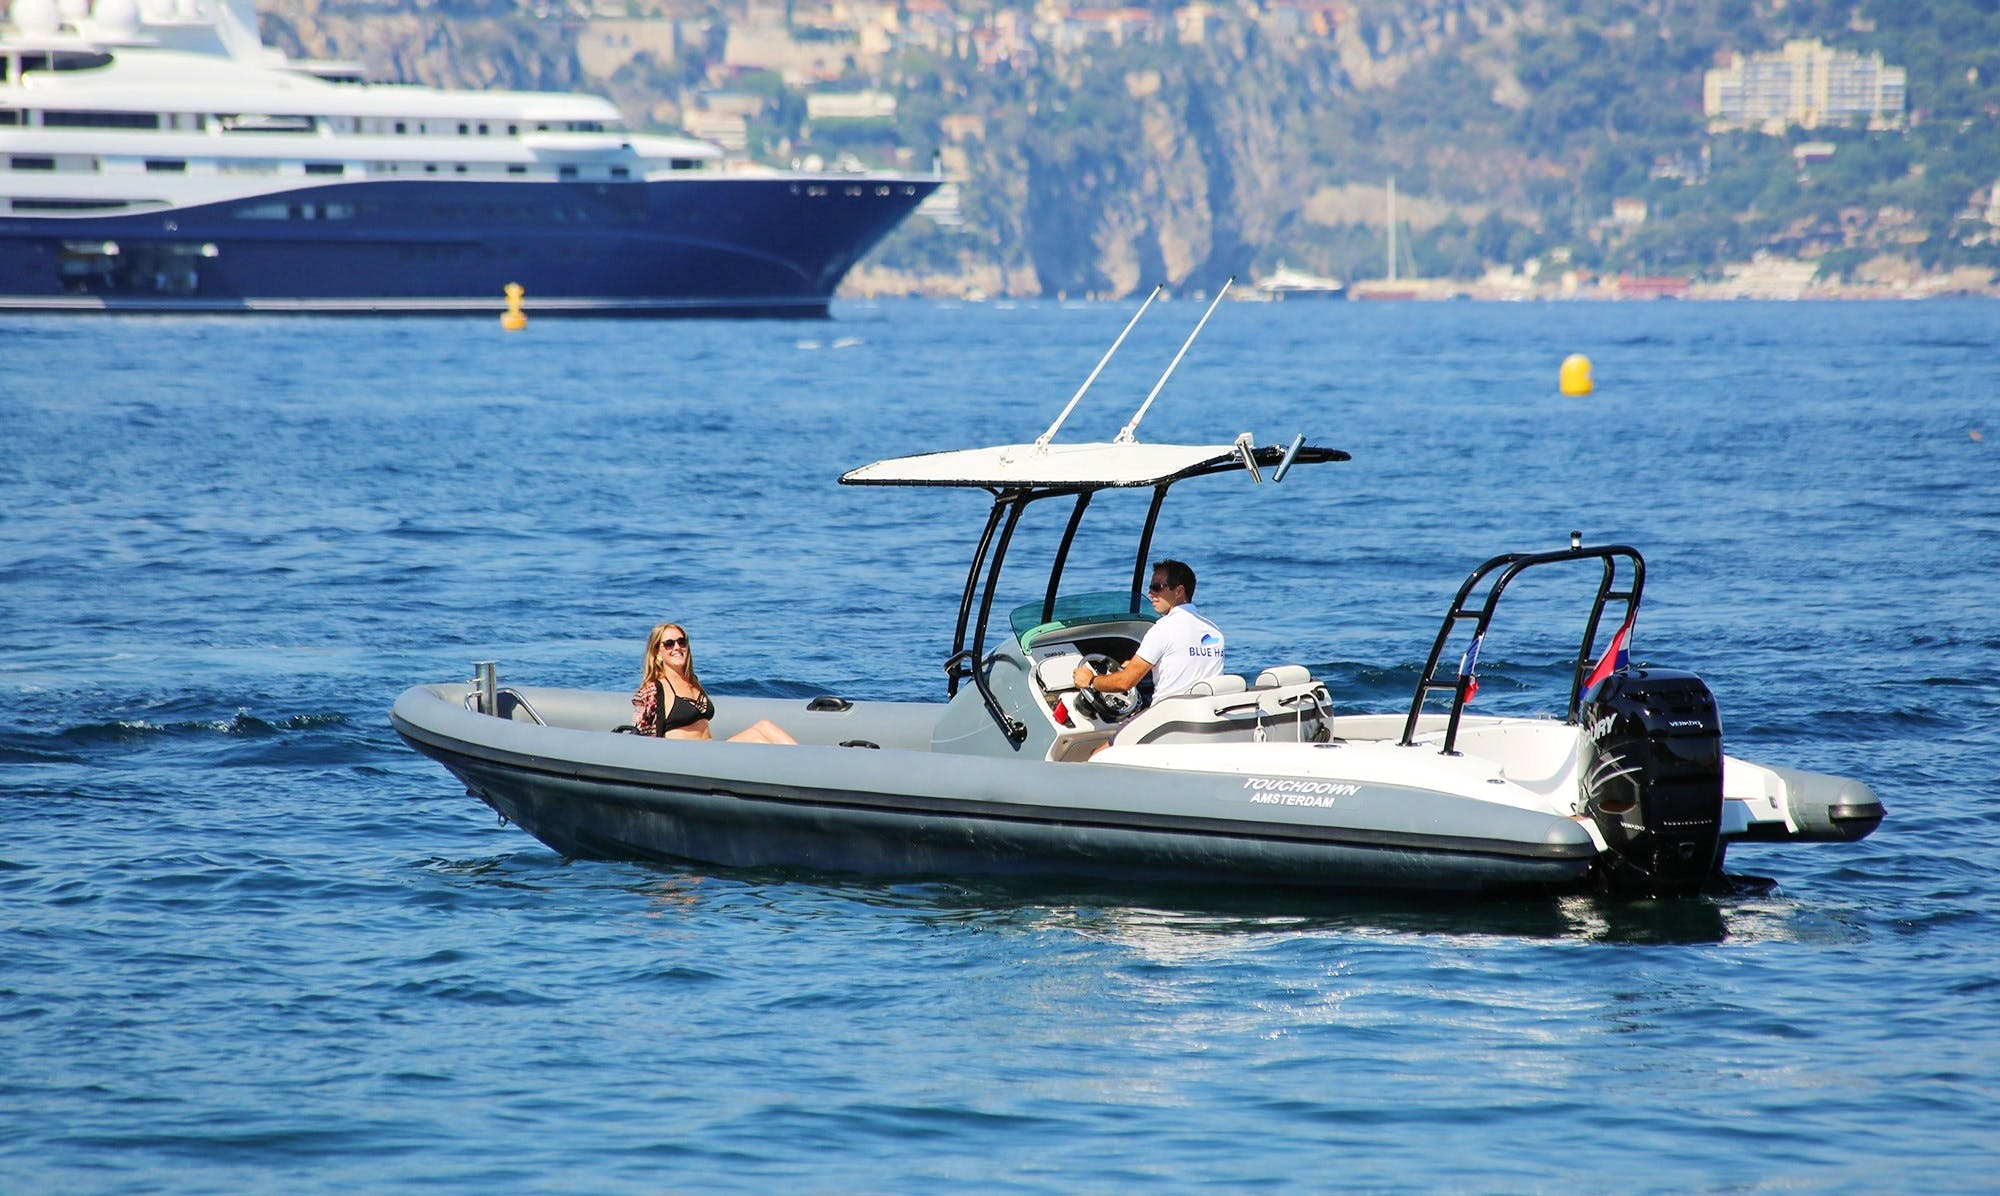 Rent 27' Airship Rigid Inflatable Boat in Saint-Jean-Cap-Ferrat, France